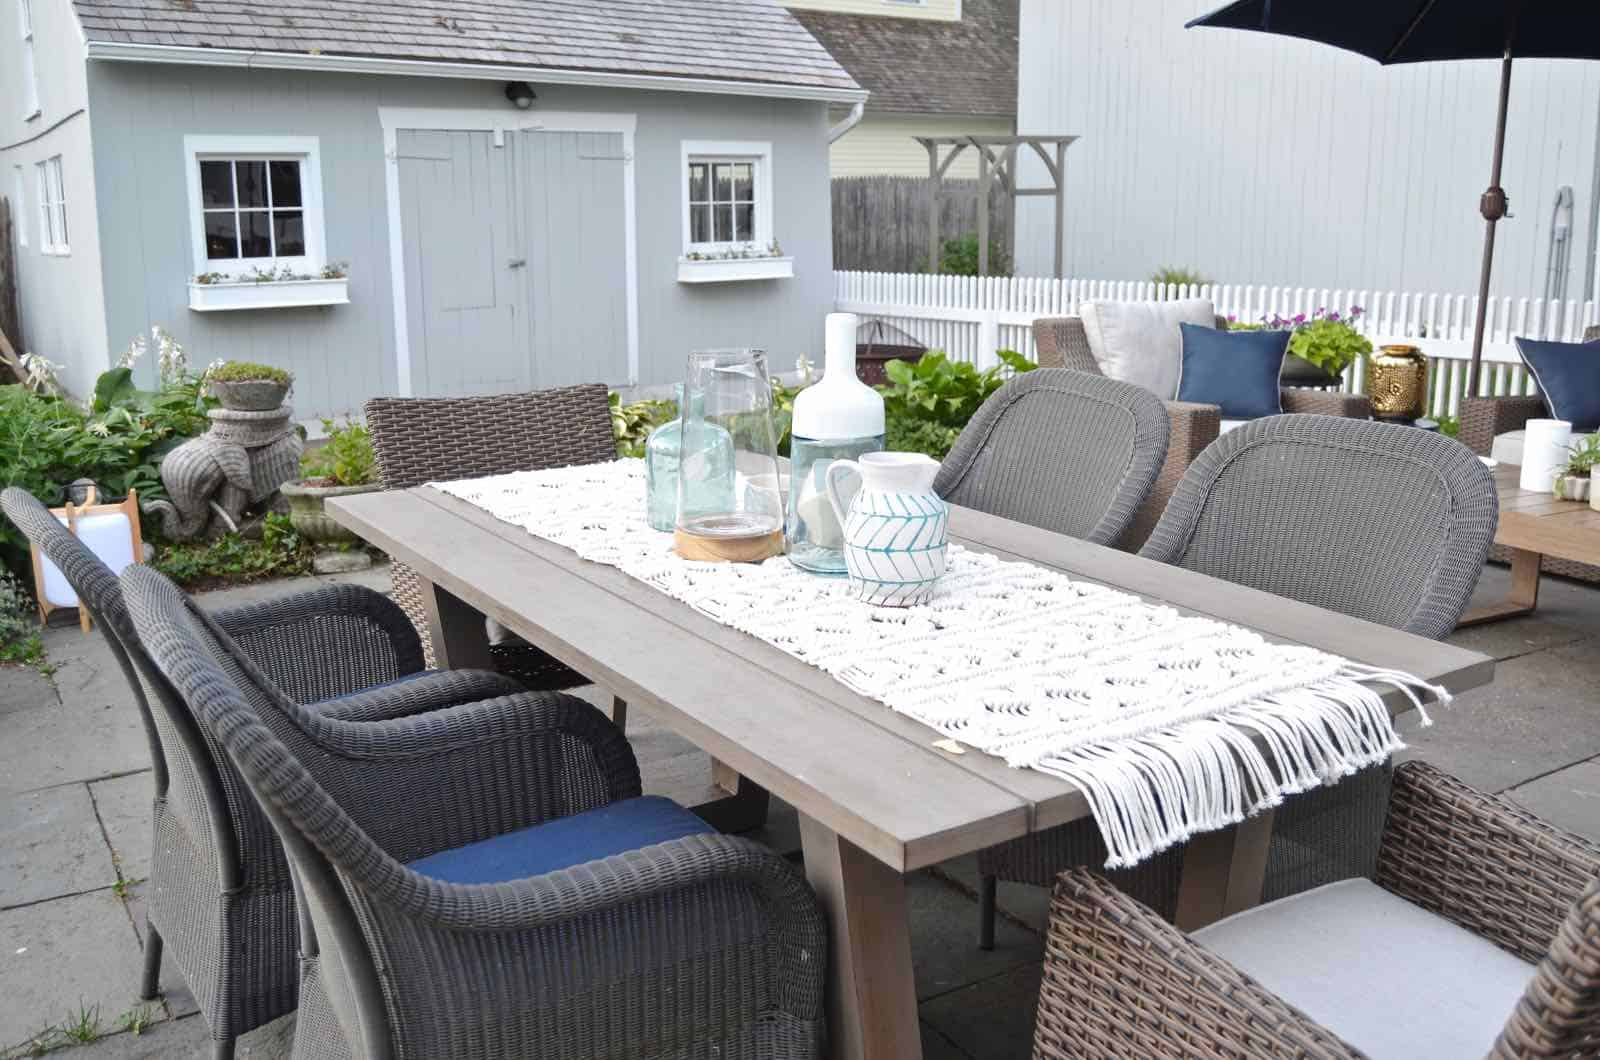 Phase 1 of our patio reveal... family friendly and cohesive furniture for the summer.